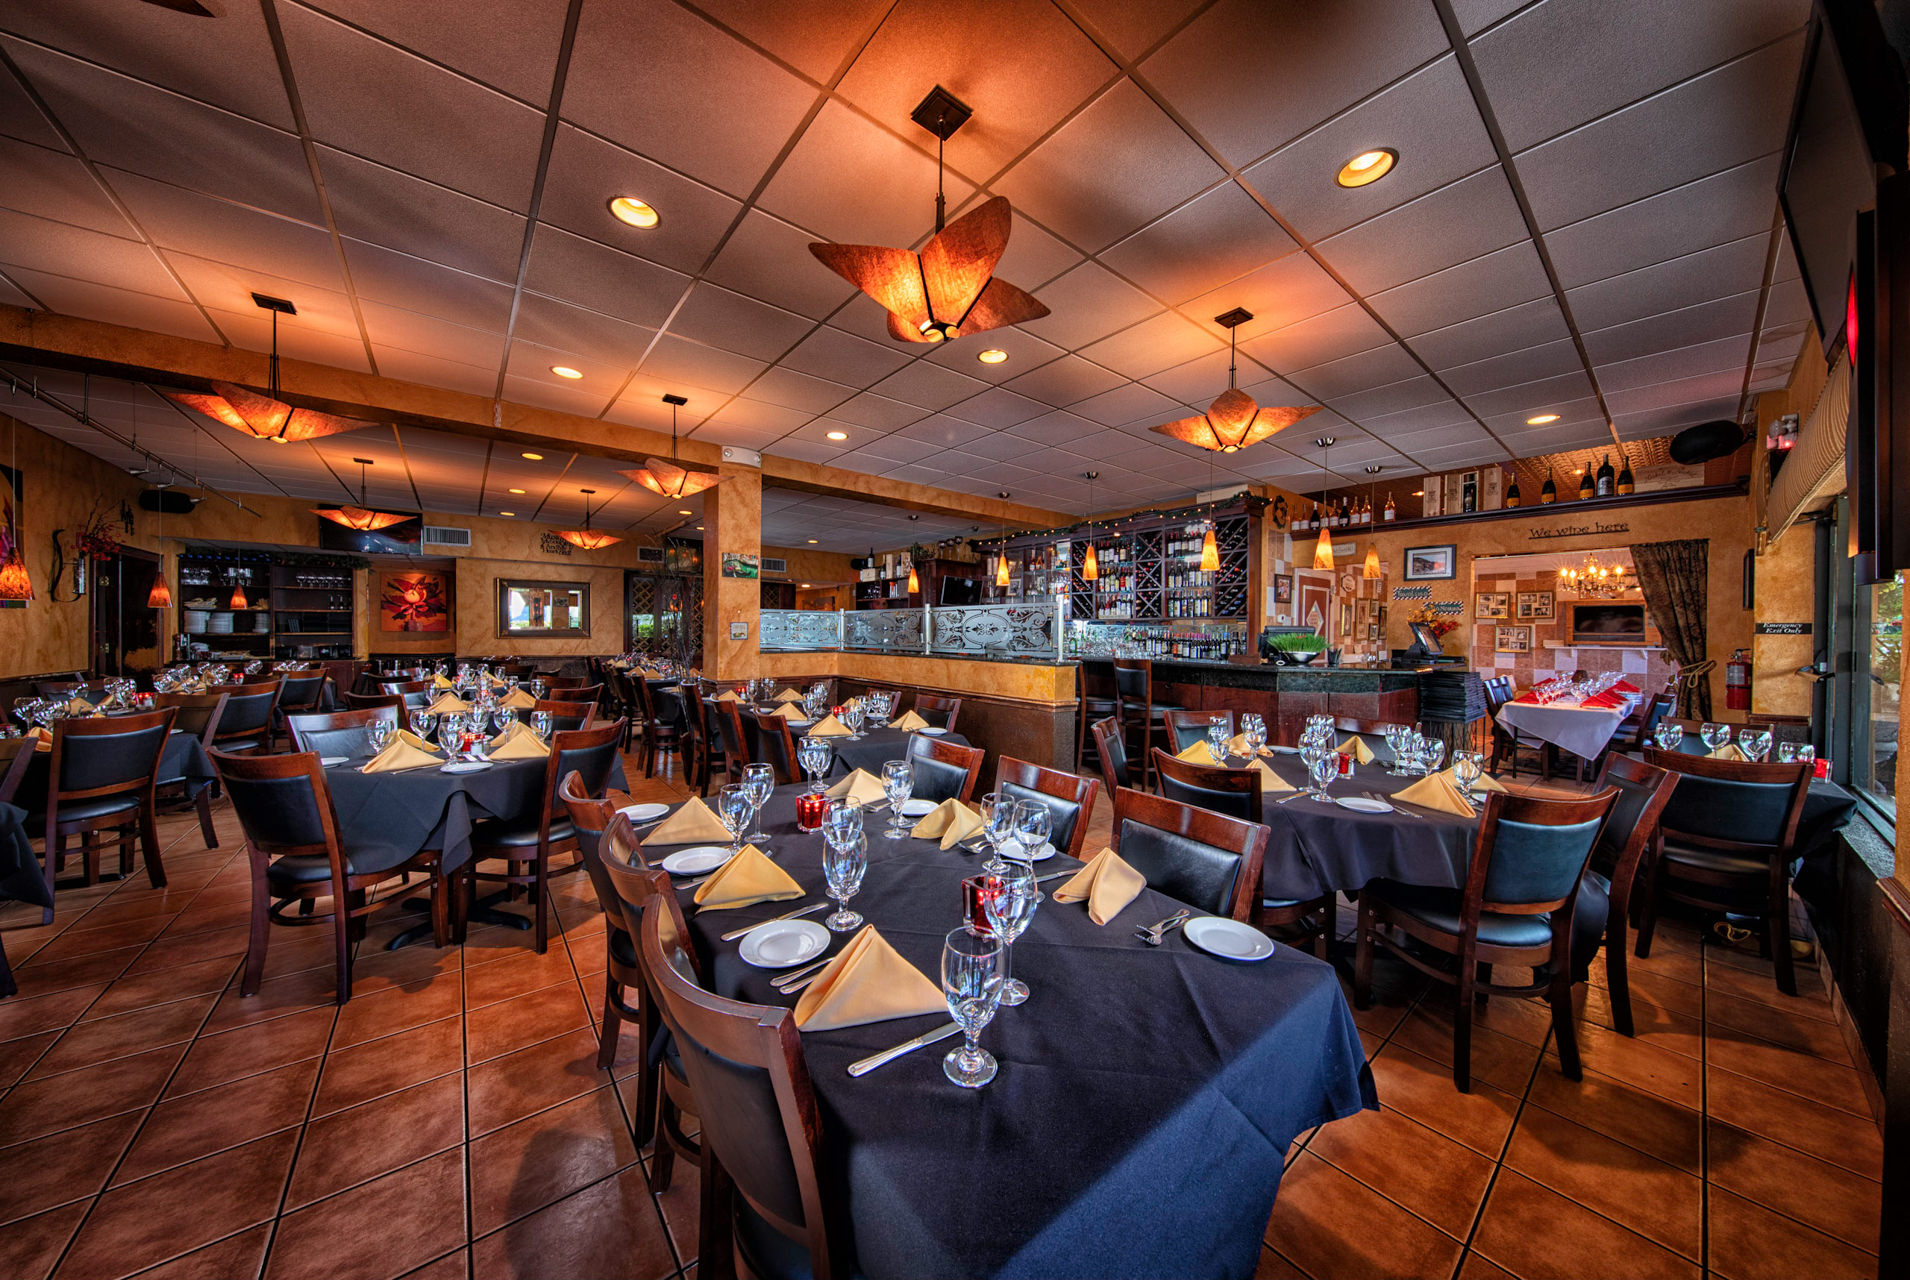 MAIN DINING ROOM - CAN BE USED FOR NON-PRIVATE PARTIES OF ALL SIZES, OR CAN BE RENTED FOR A FULLY PRIVATE PARTY OF UP TO 80.